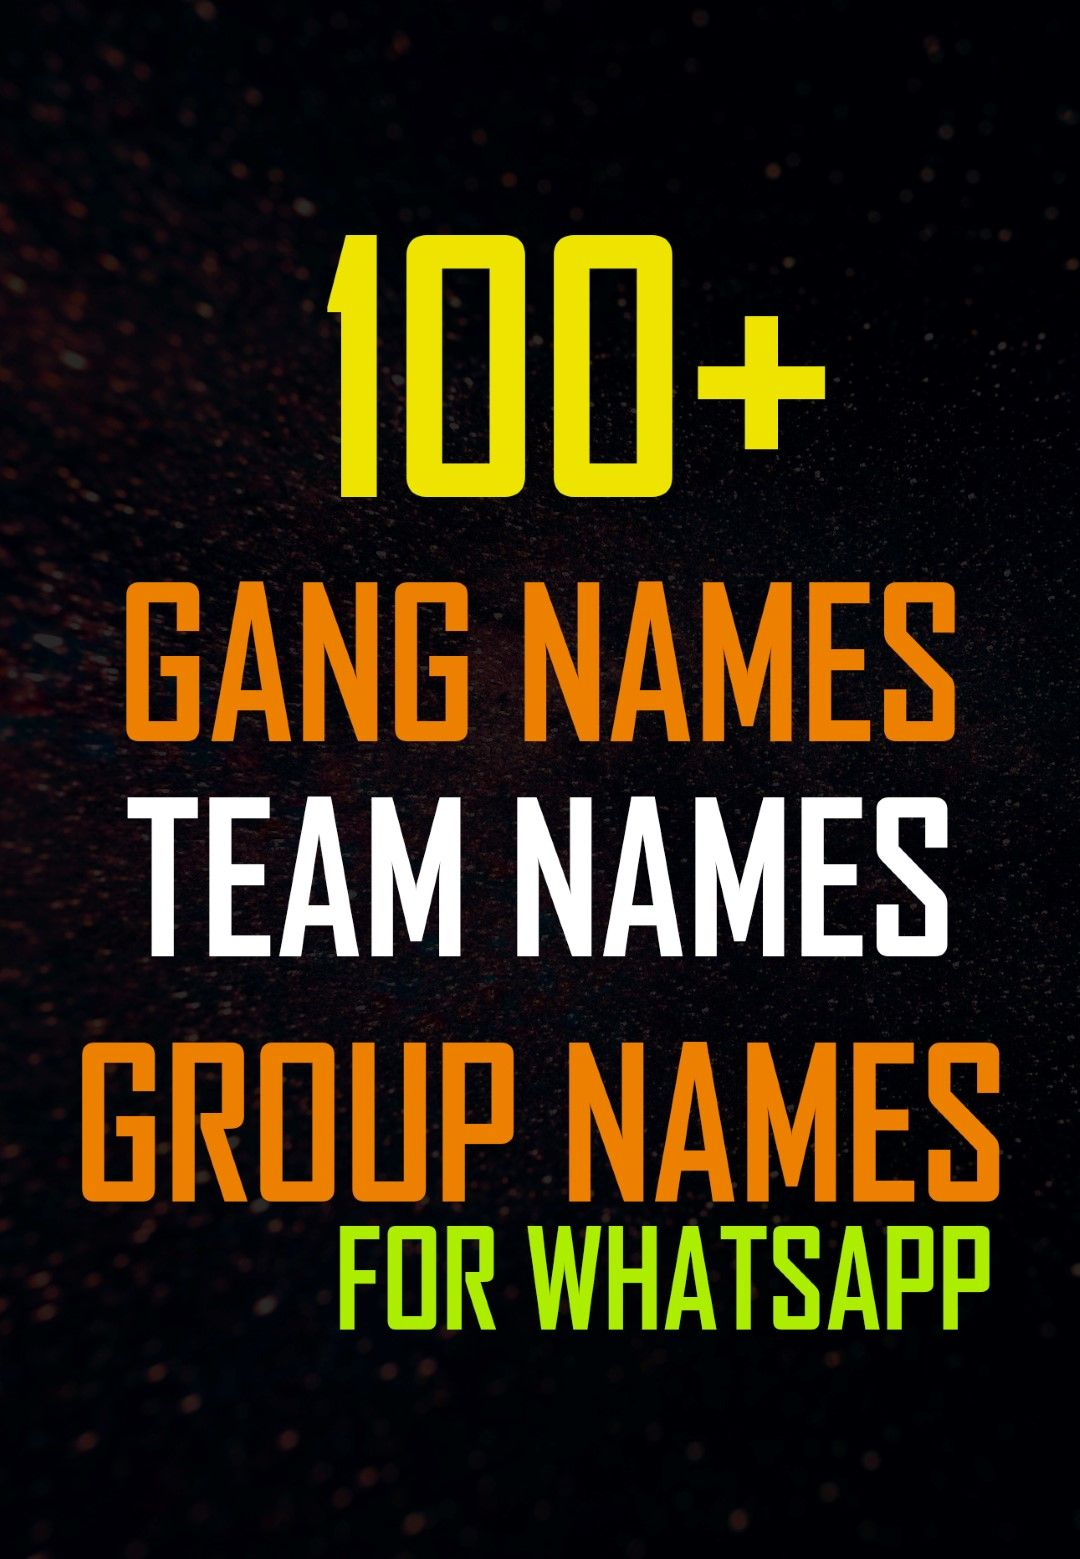 100+ Group Names - College Gang Names - Cool Team Names | College